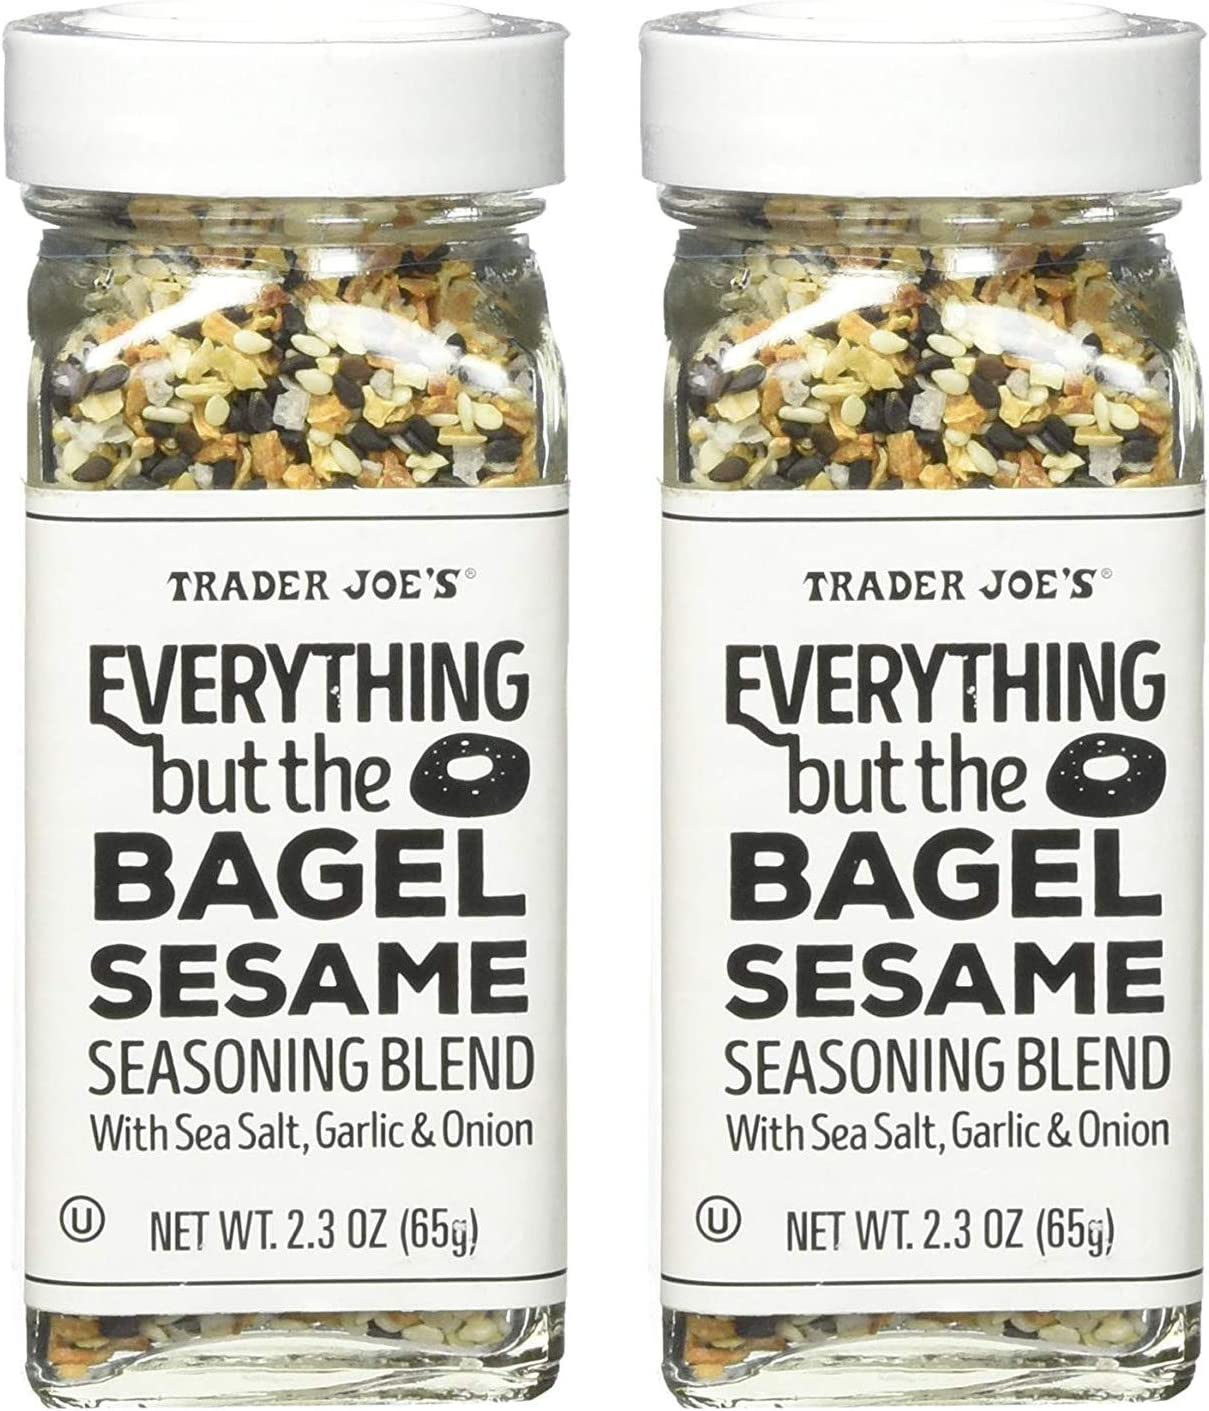 Trader Joe's Everything but the Bagel Sesame Seasoning Blend 2.3 oz (2 Pack): Health & Personal Care